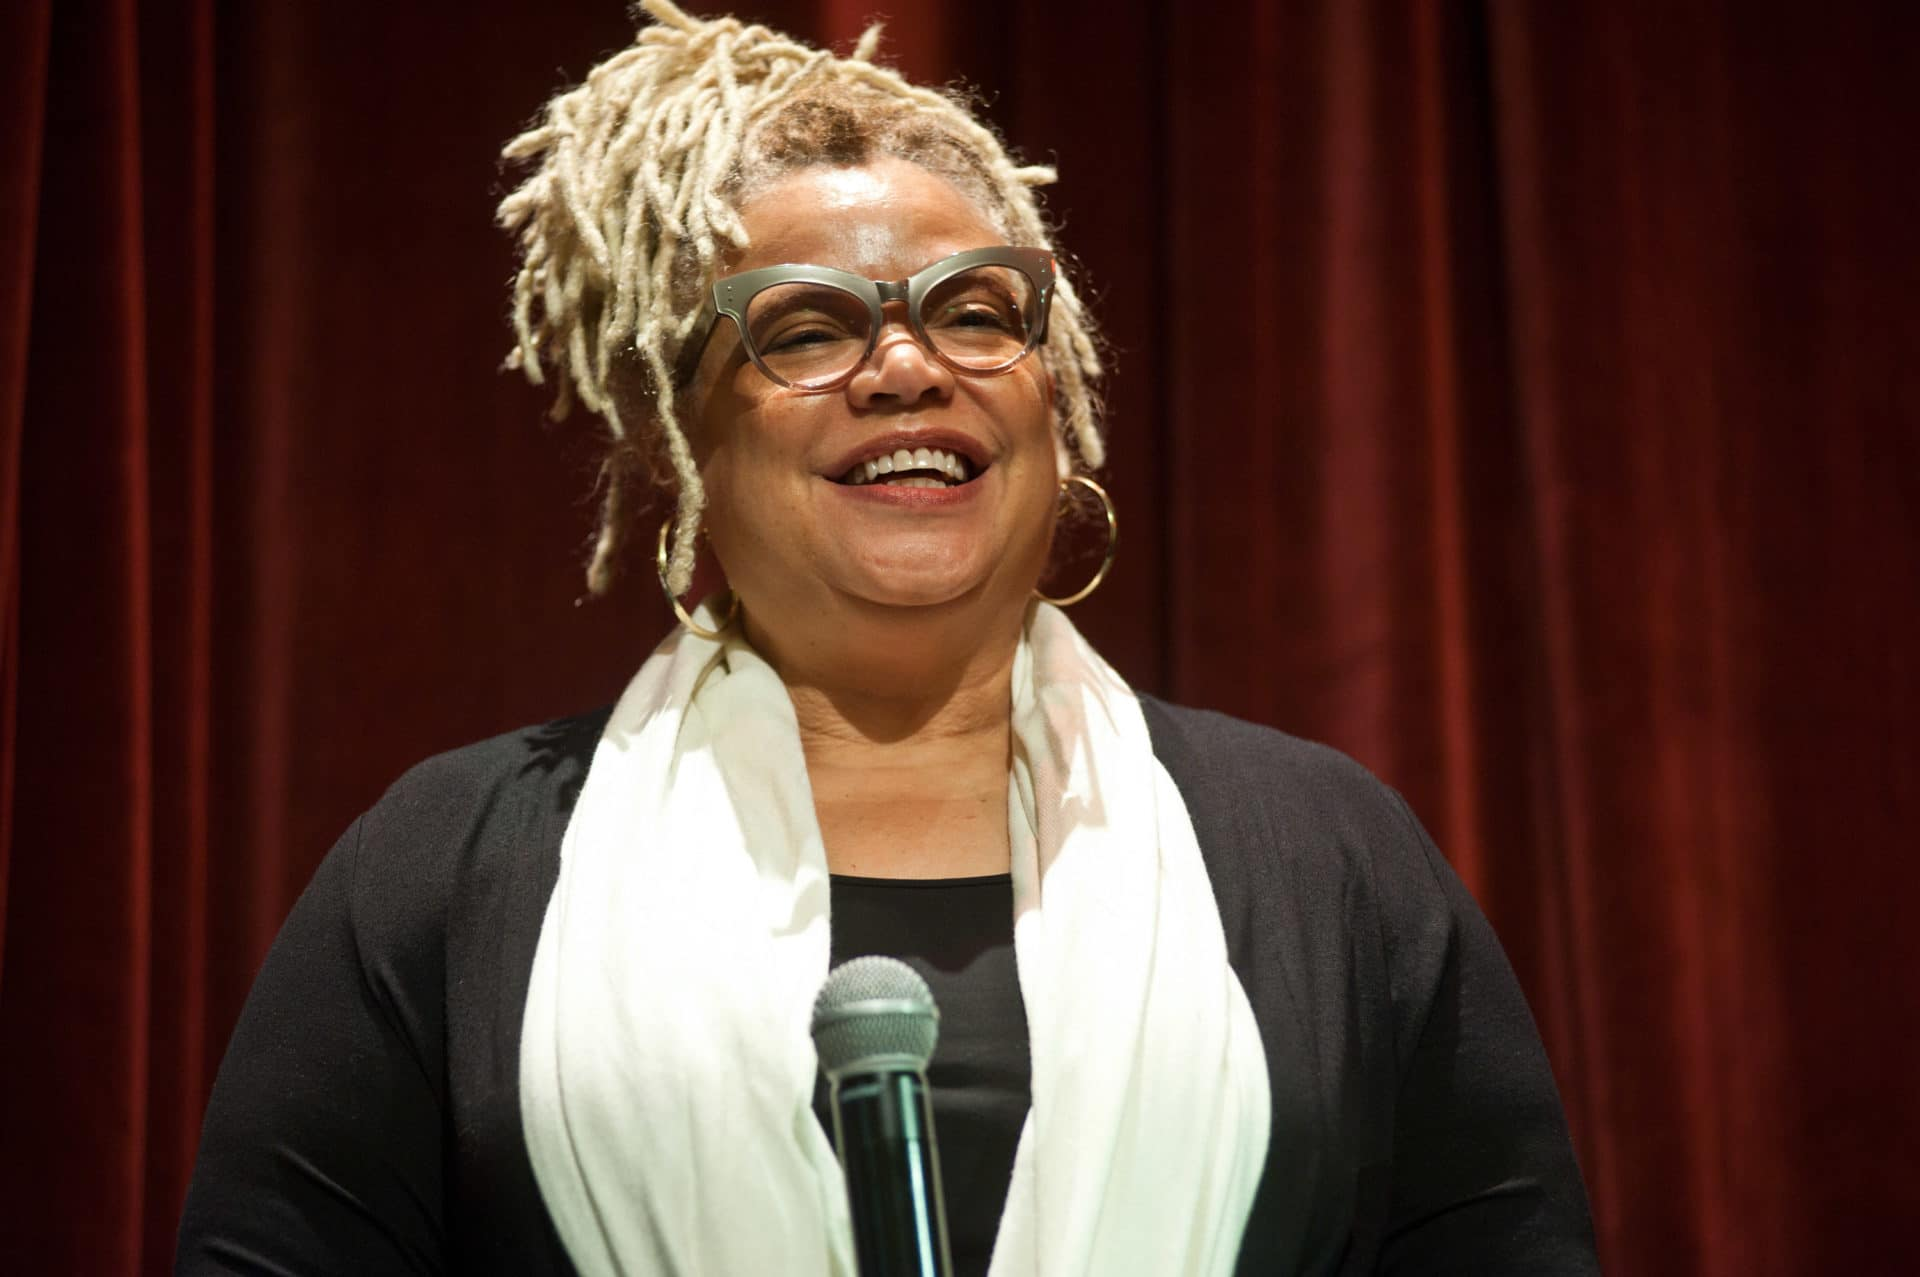 'Eve's Bayou' Screenwriter Kasi Lemmons Says Black Women Writers Have A Responsibility